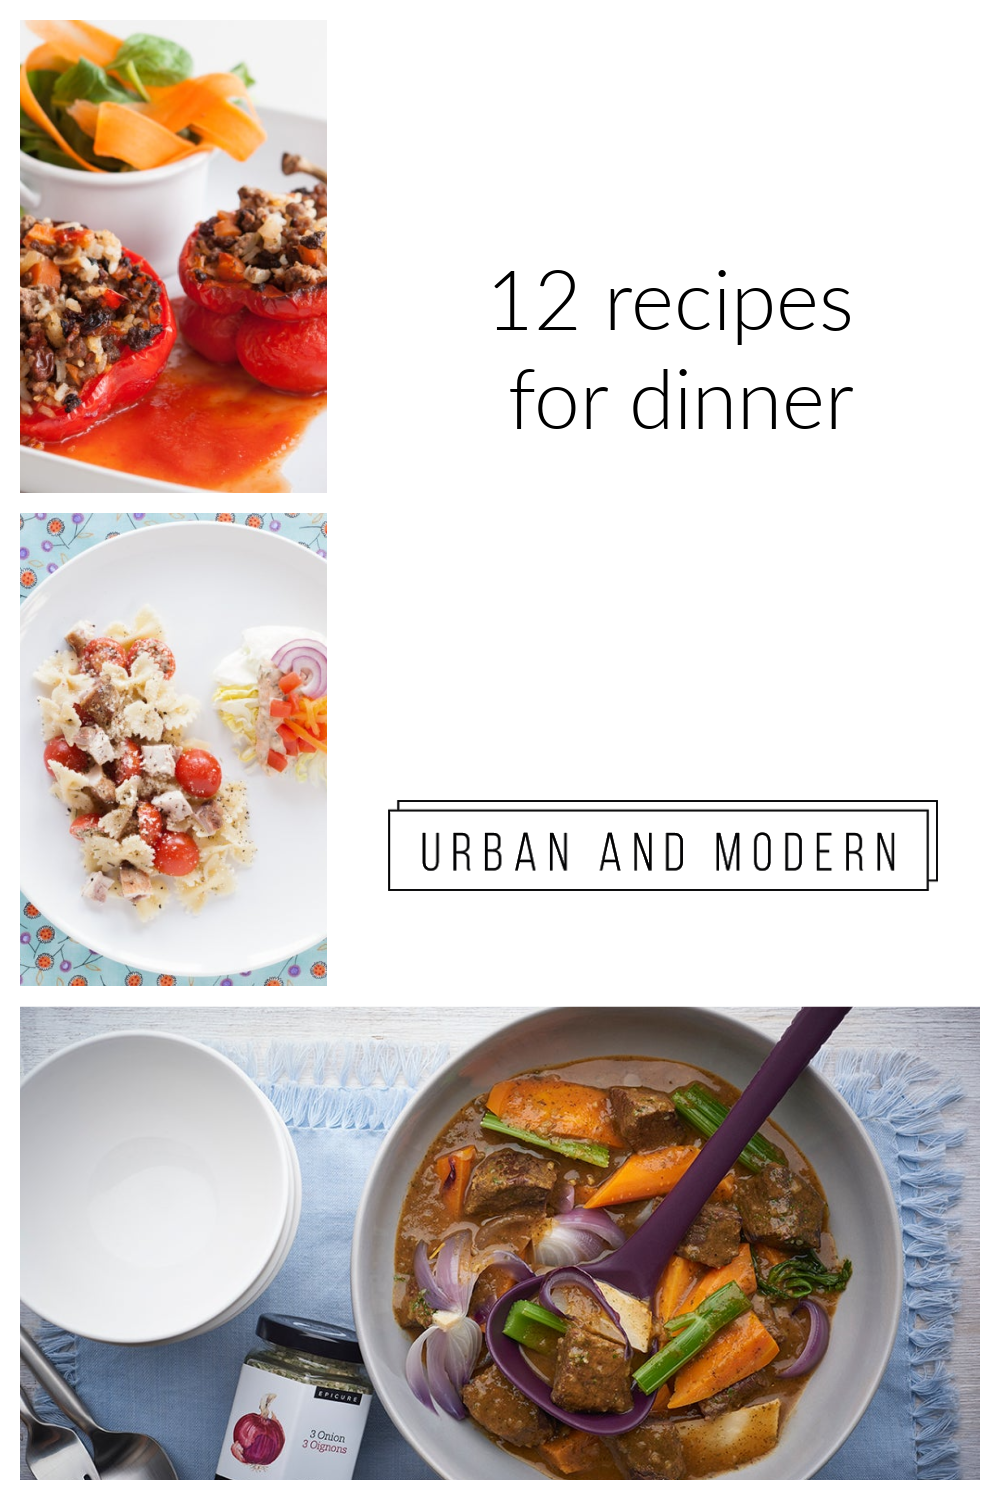 Recipes for Dinner